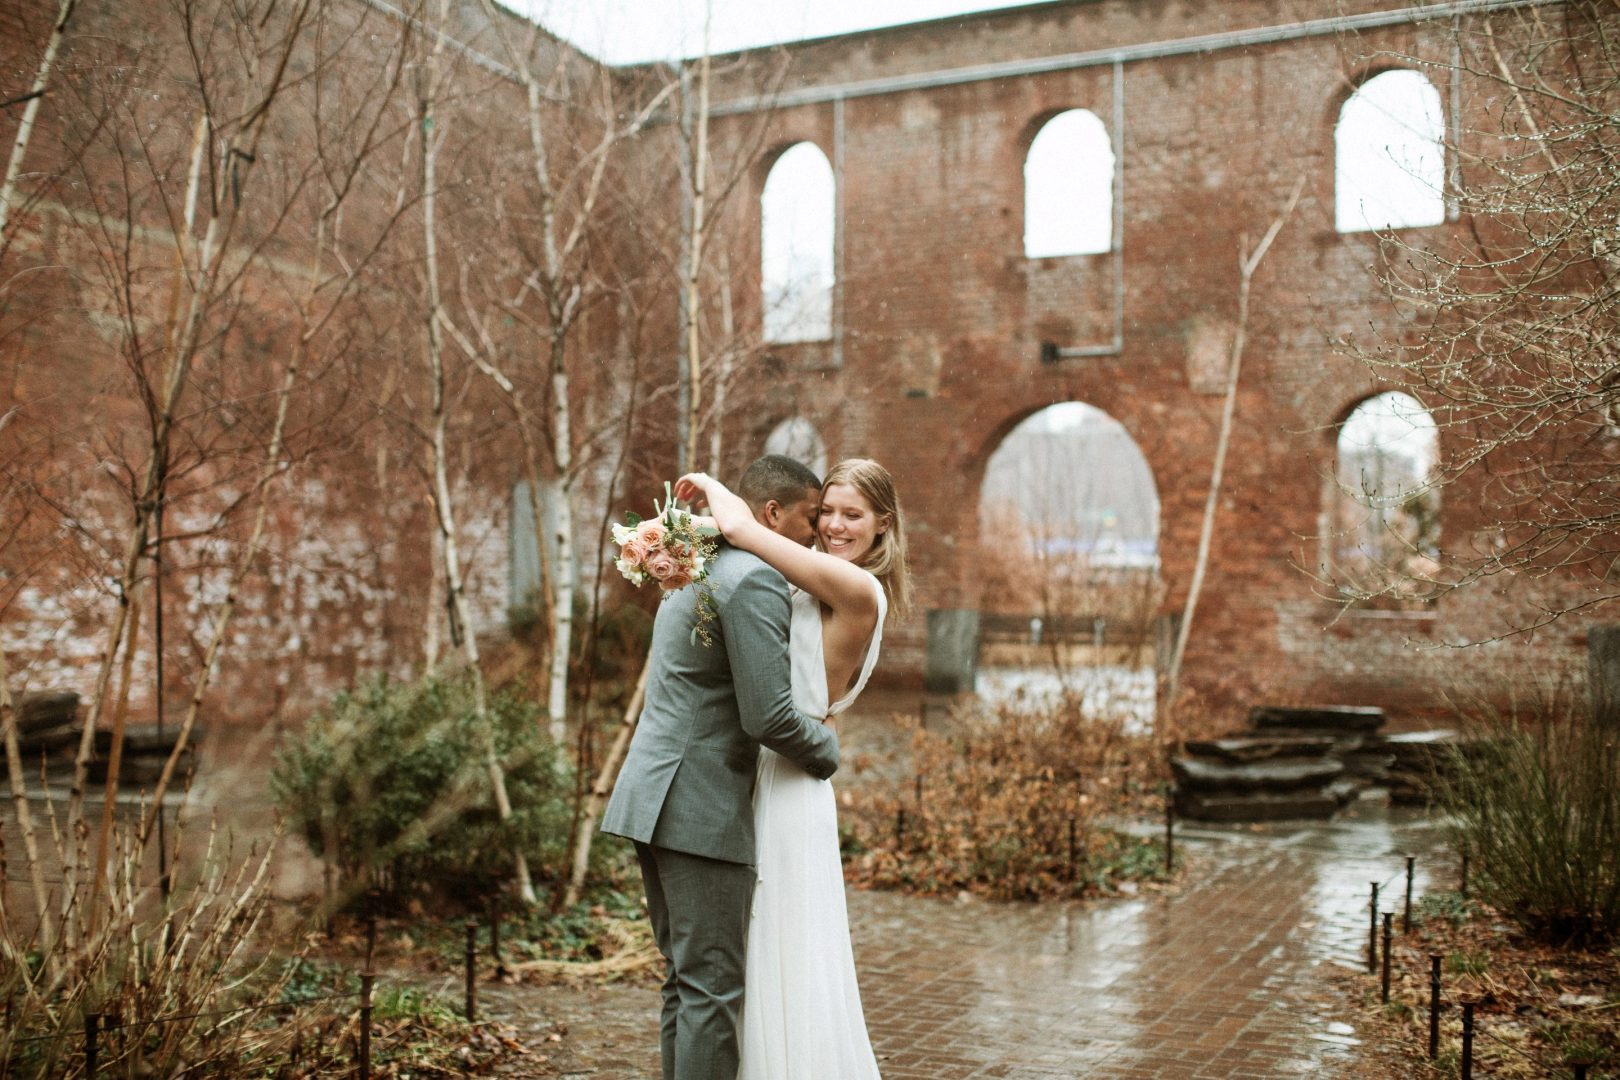 New York City Wedding in the Rain